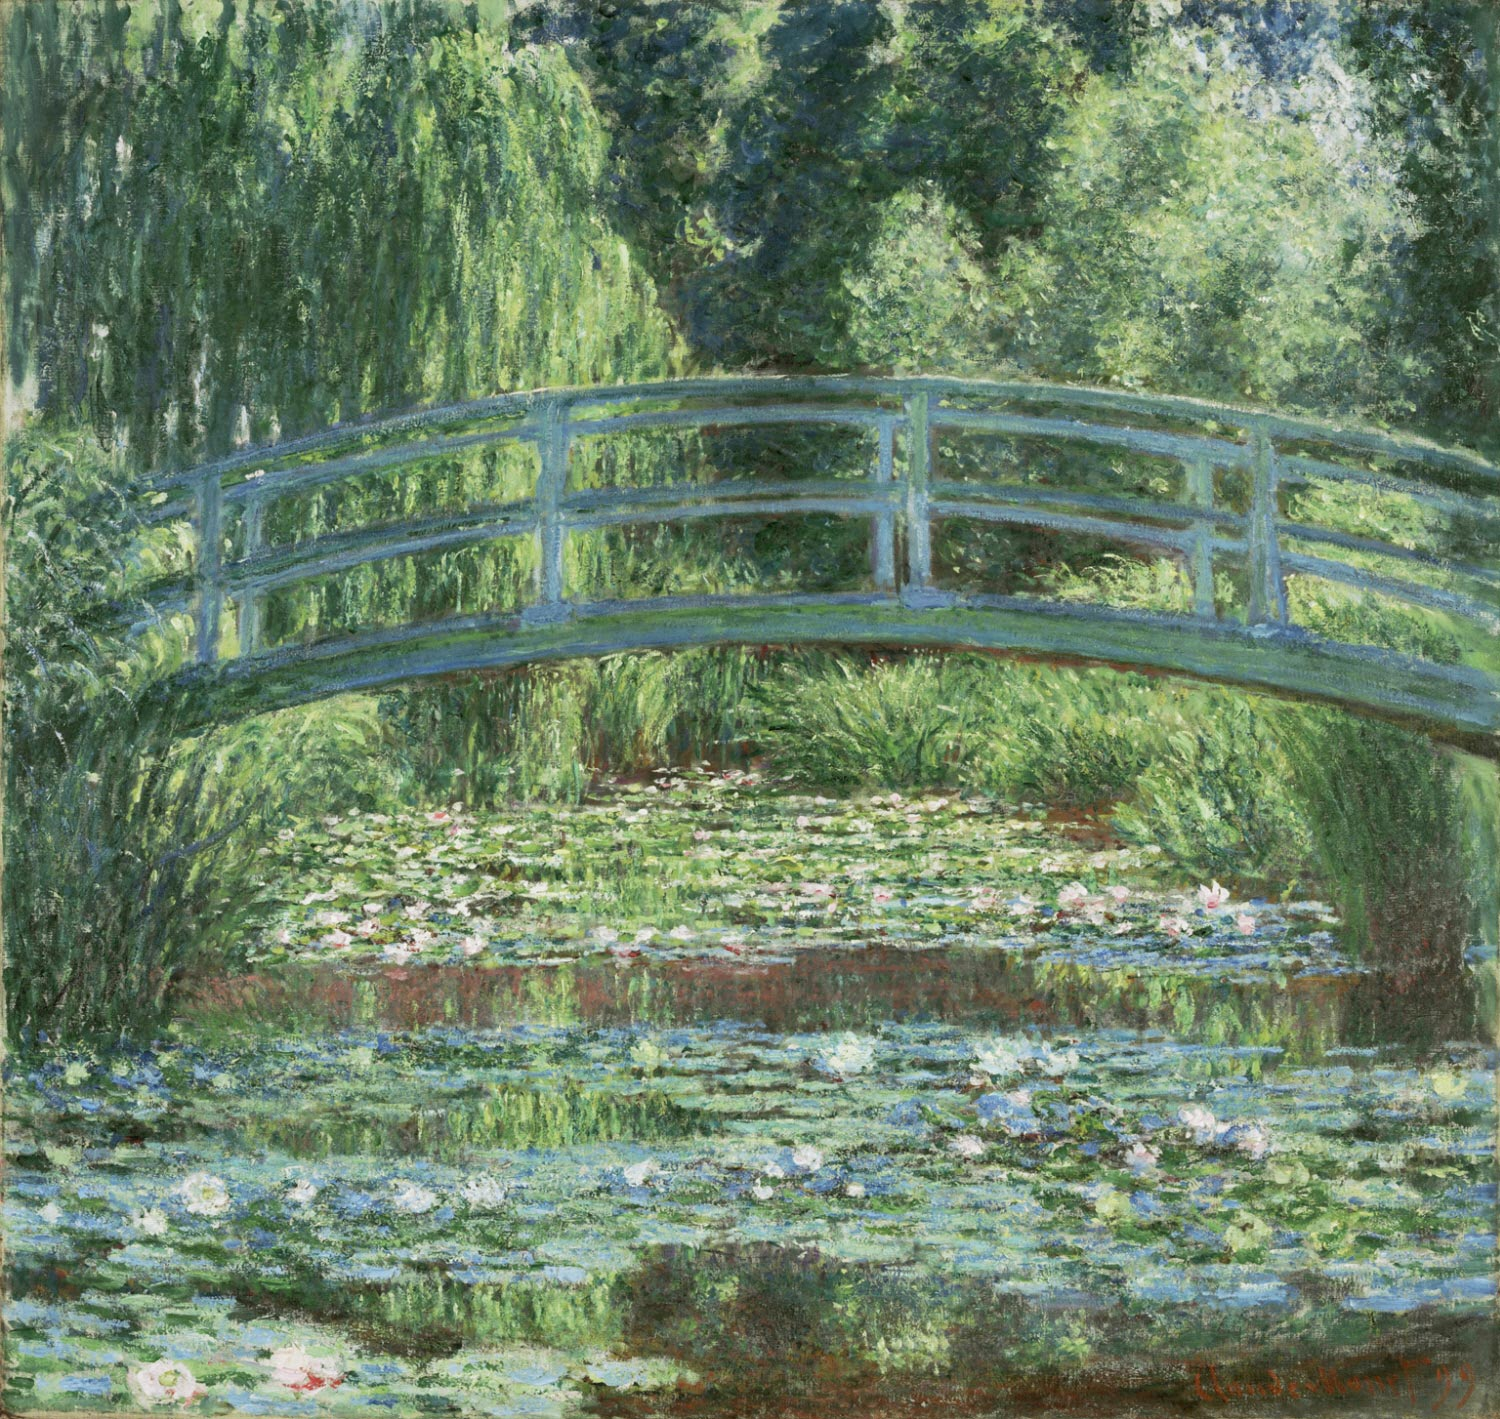 Japanese Footbridge and the Water Lily Pool, Giverny